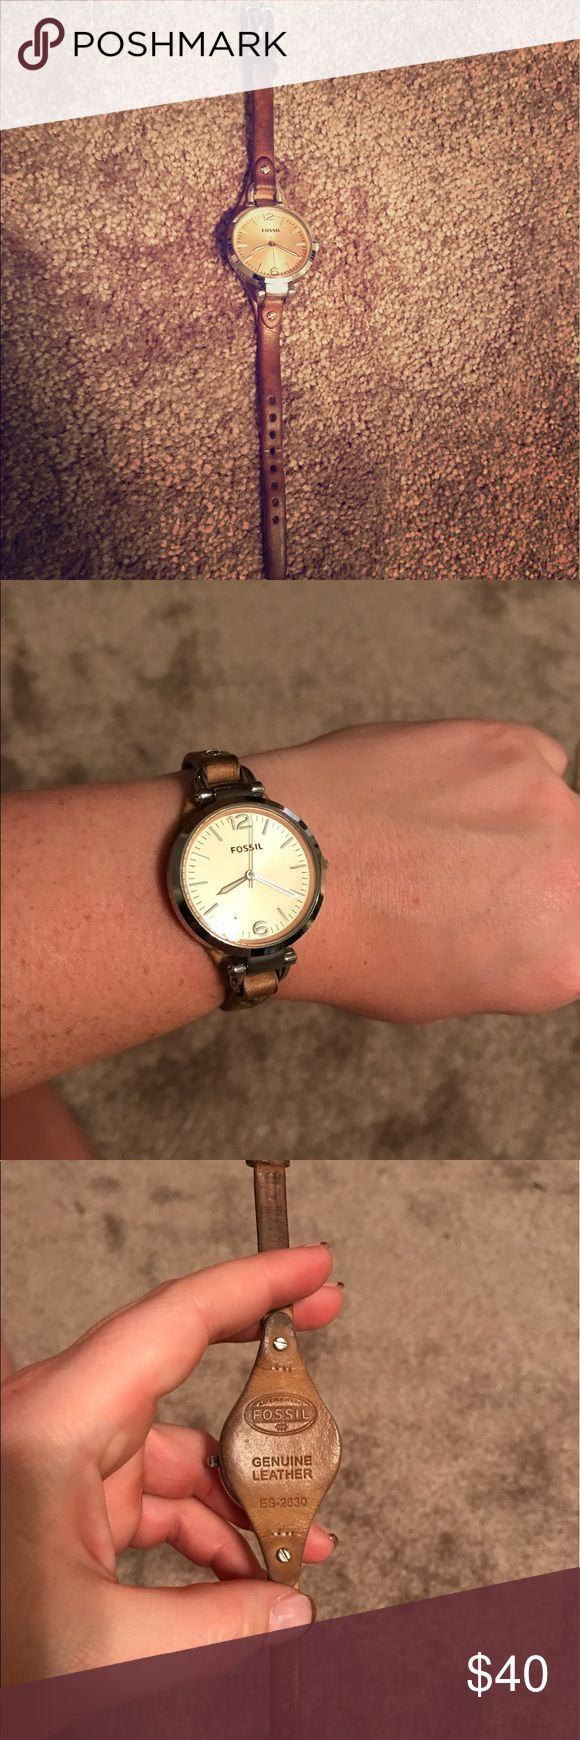 Fossil Leather Watch Fossil leather watch with light brown/tan leather band and silver metal. Working battery. No scratches, good condition. Fossil Accessories Watches